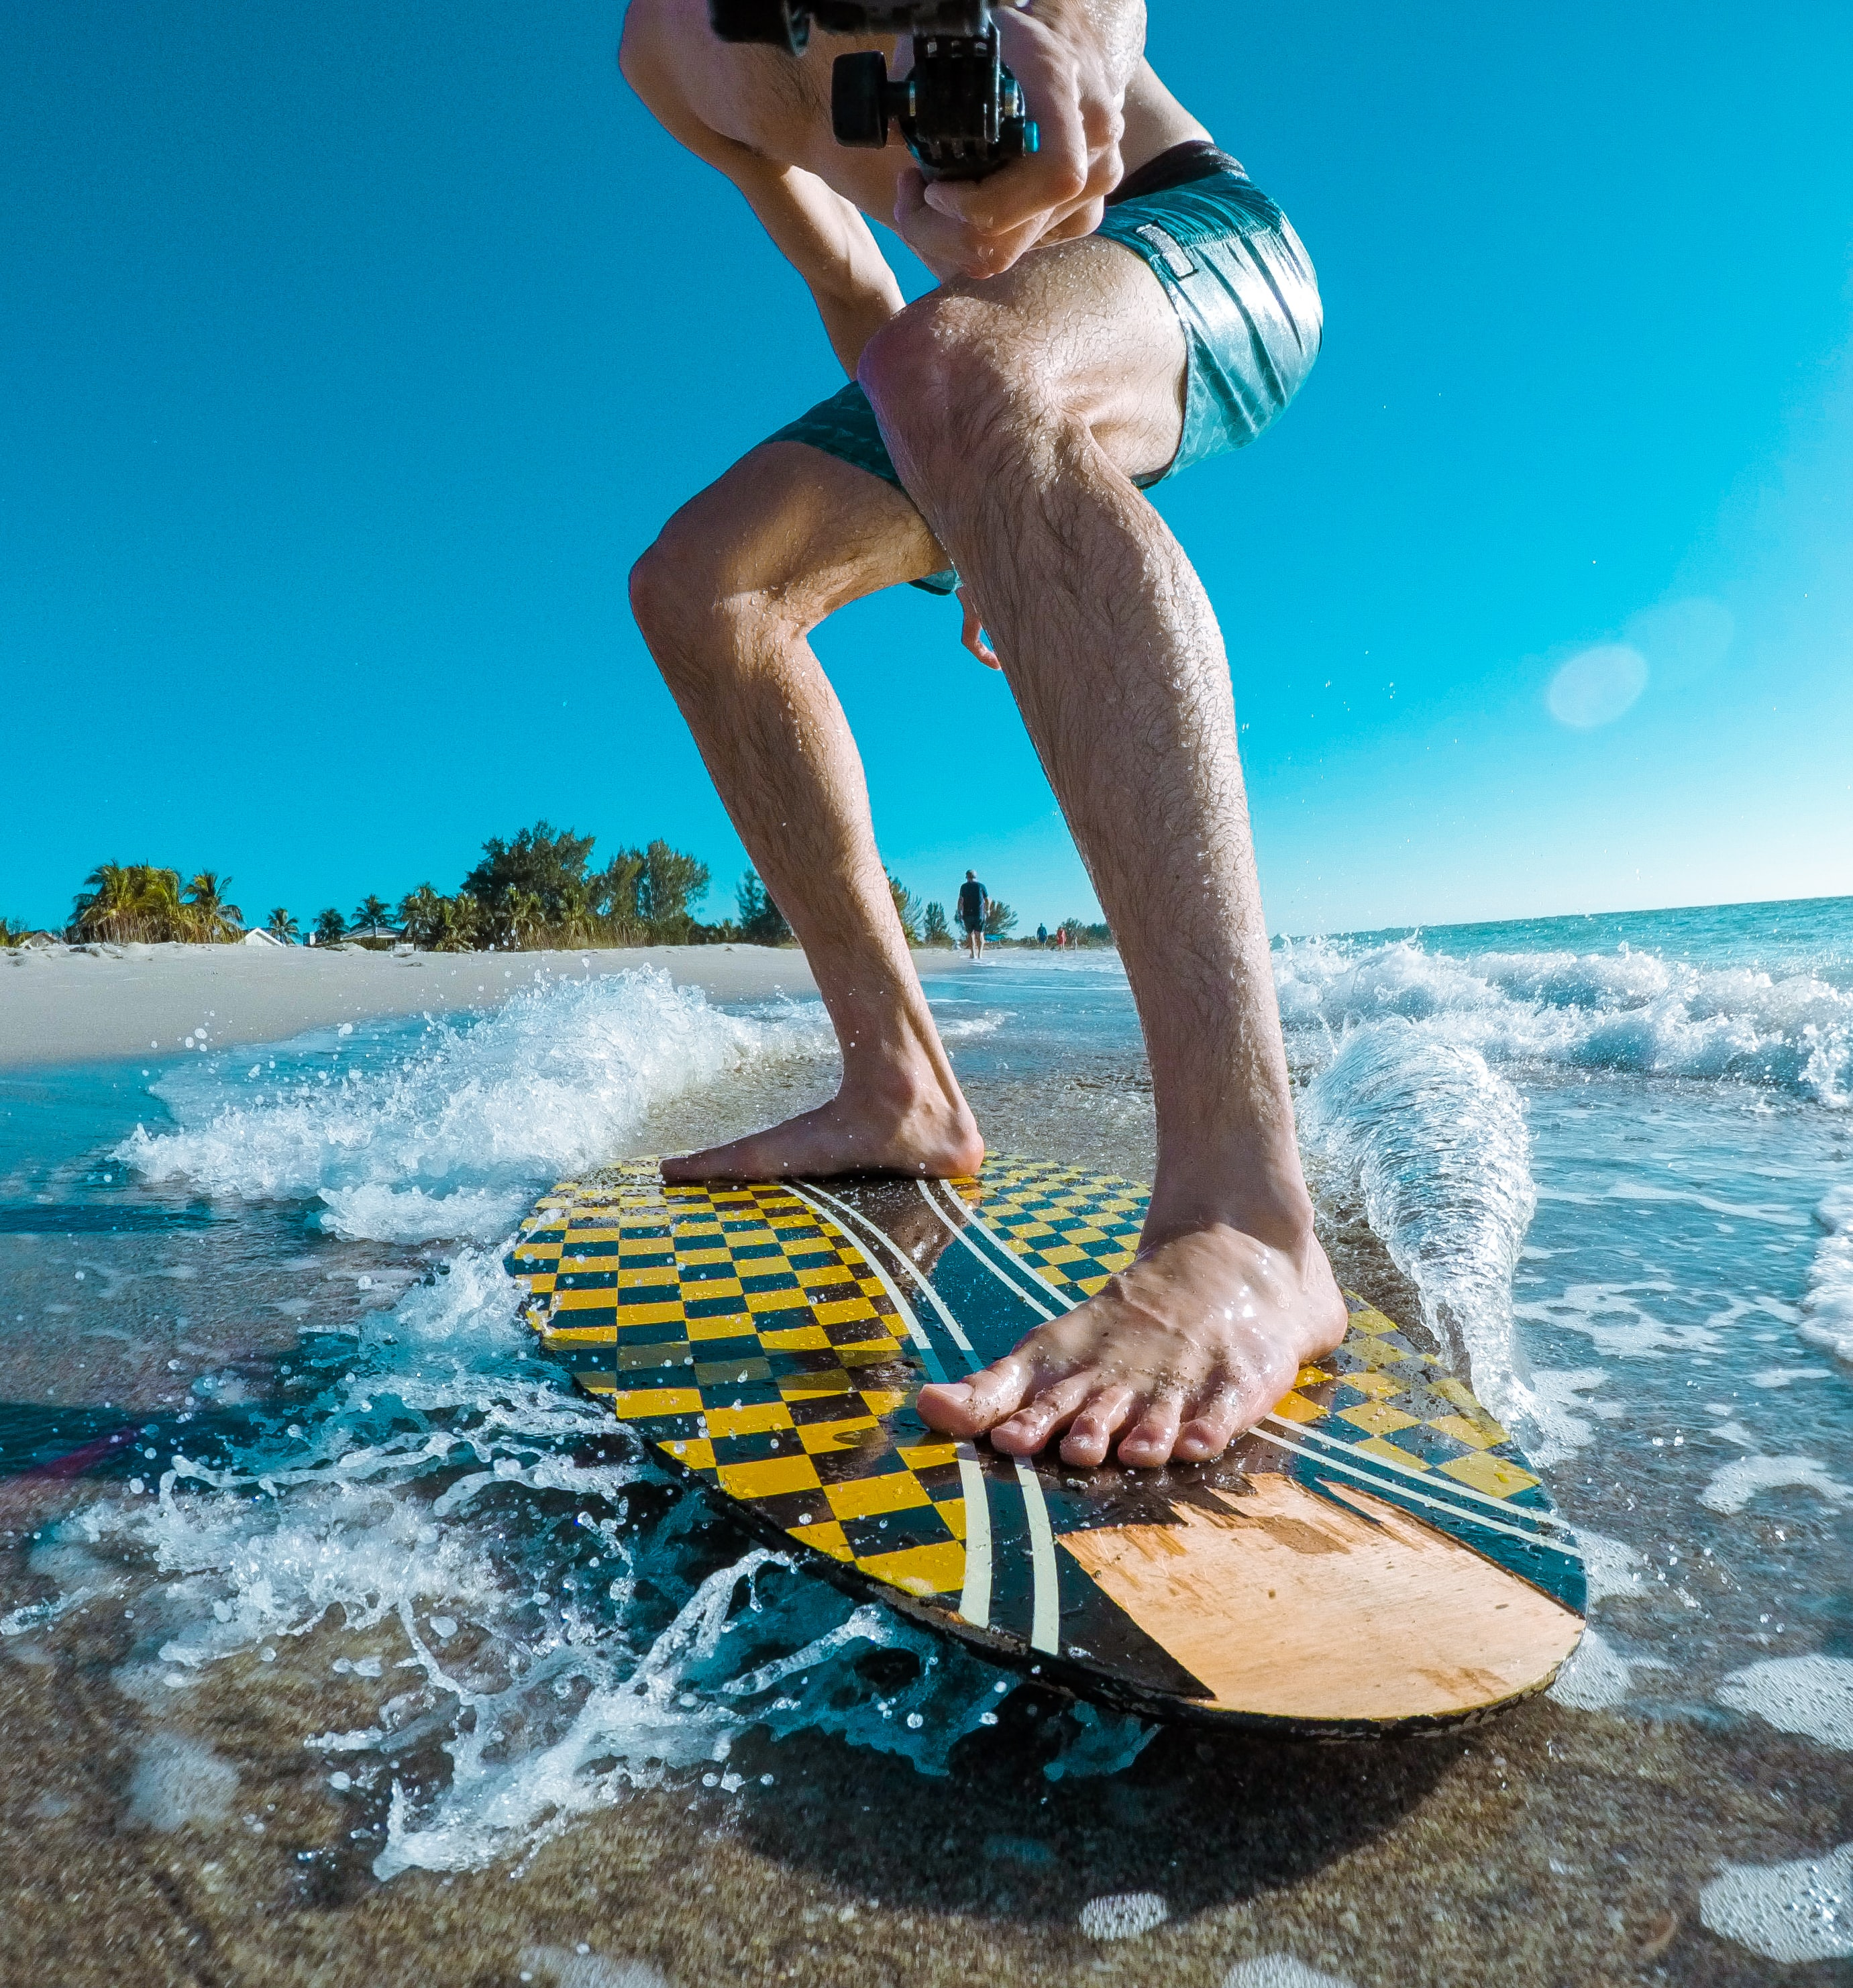 person surfboarding while taking footage of himself on beach during daytime